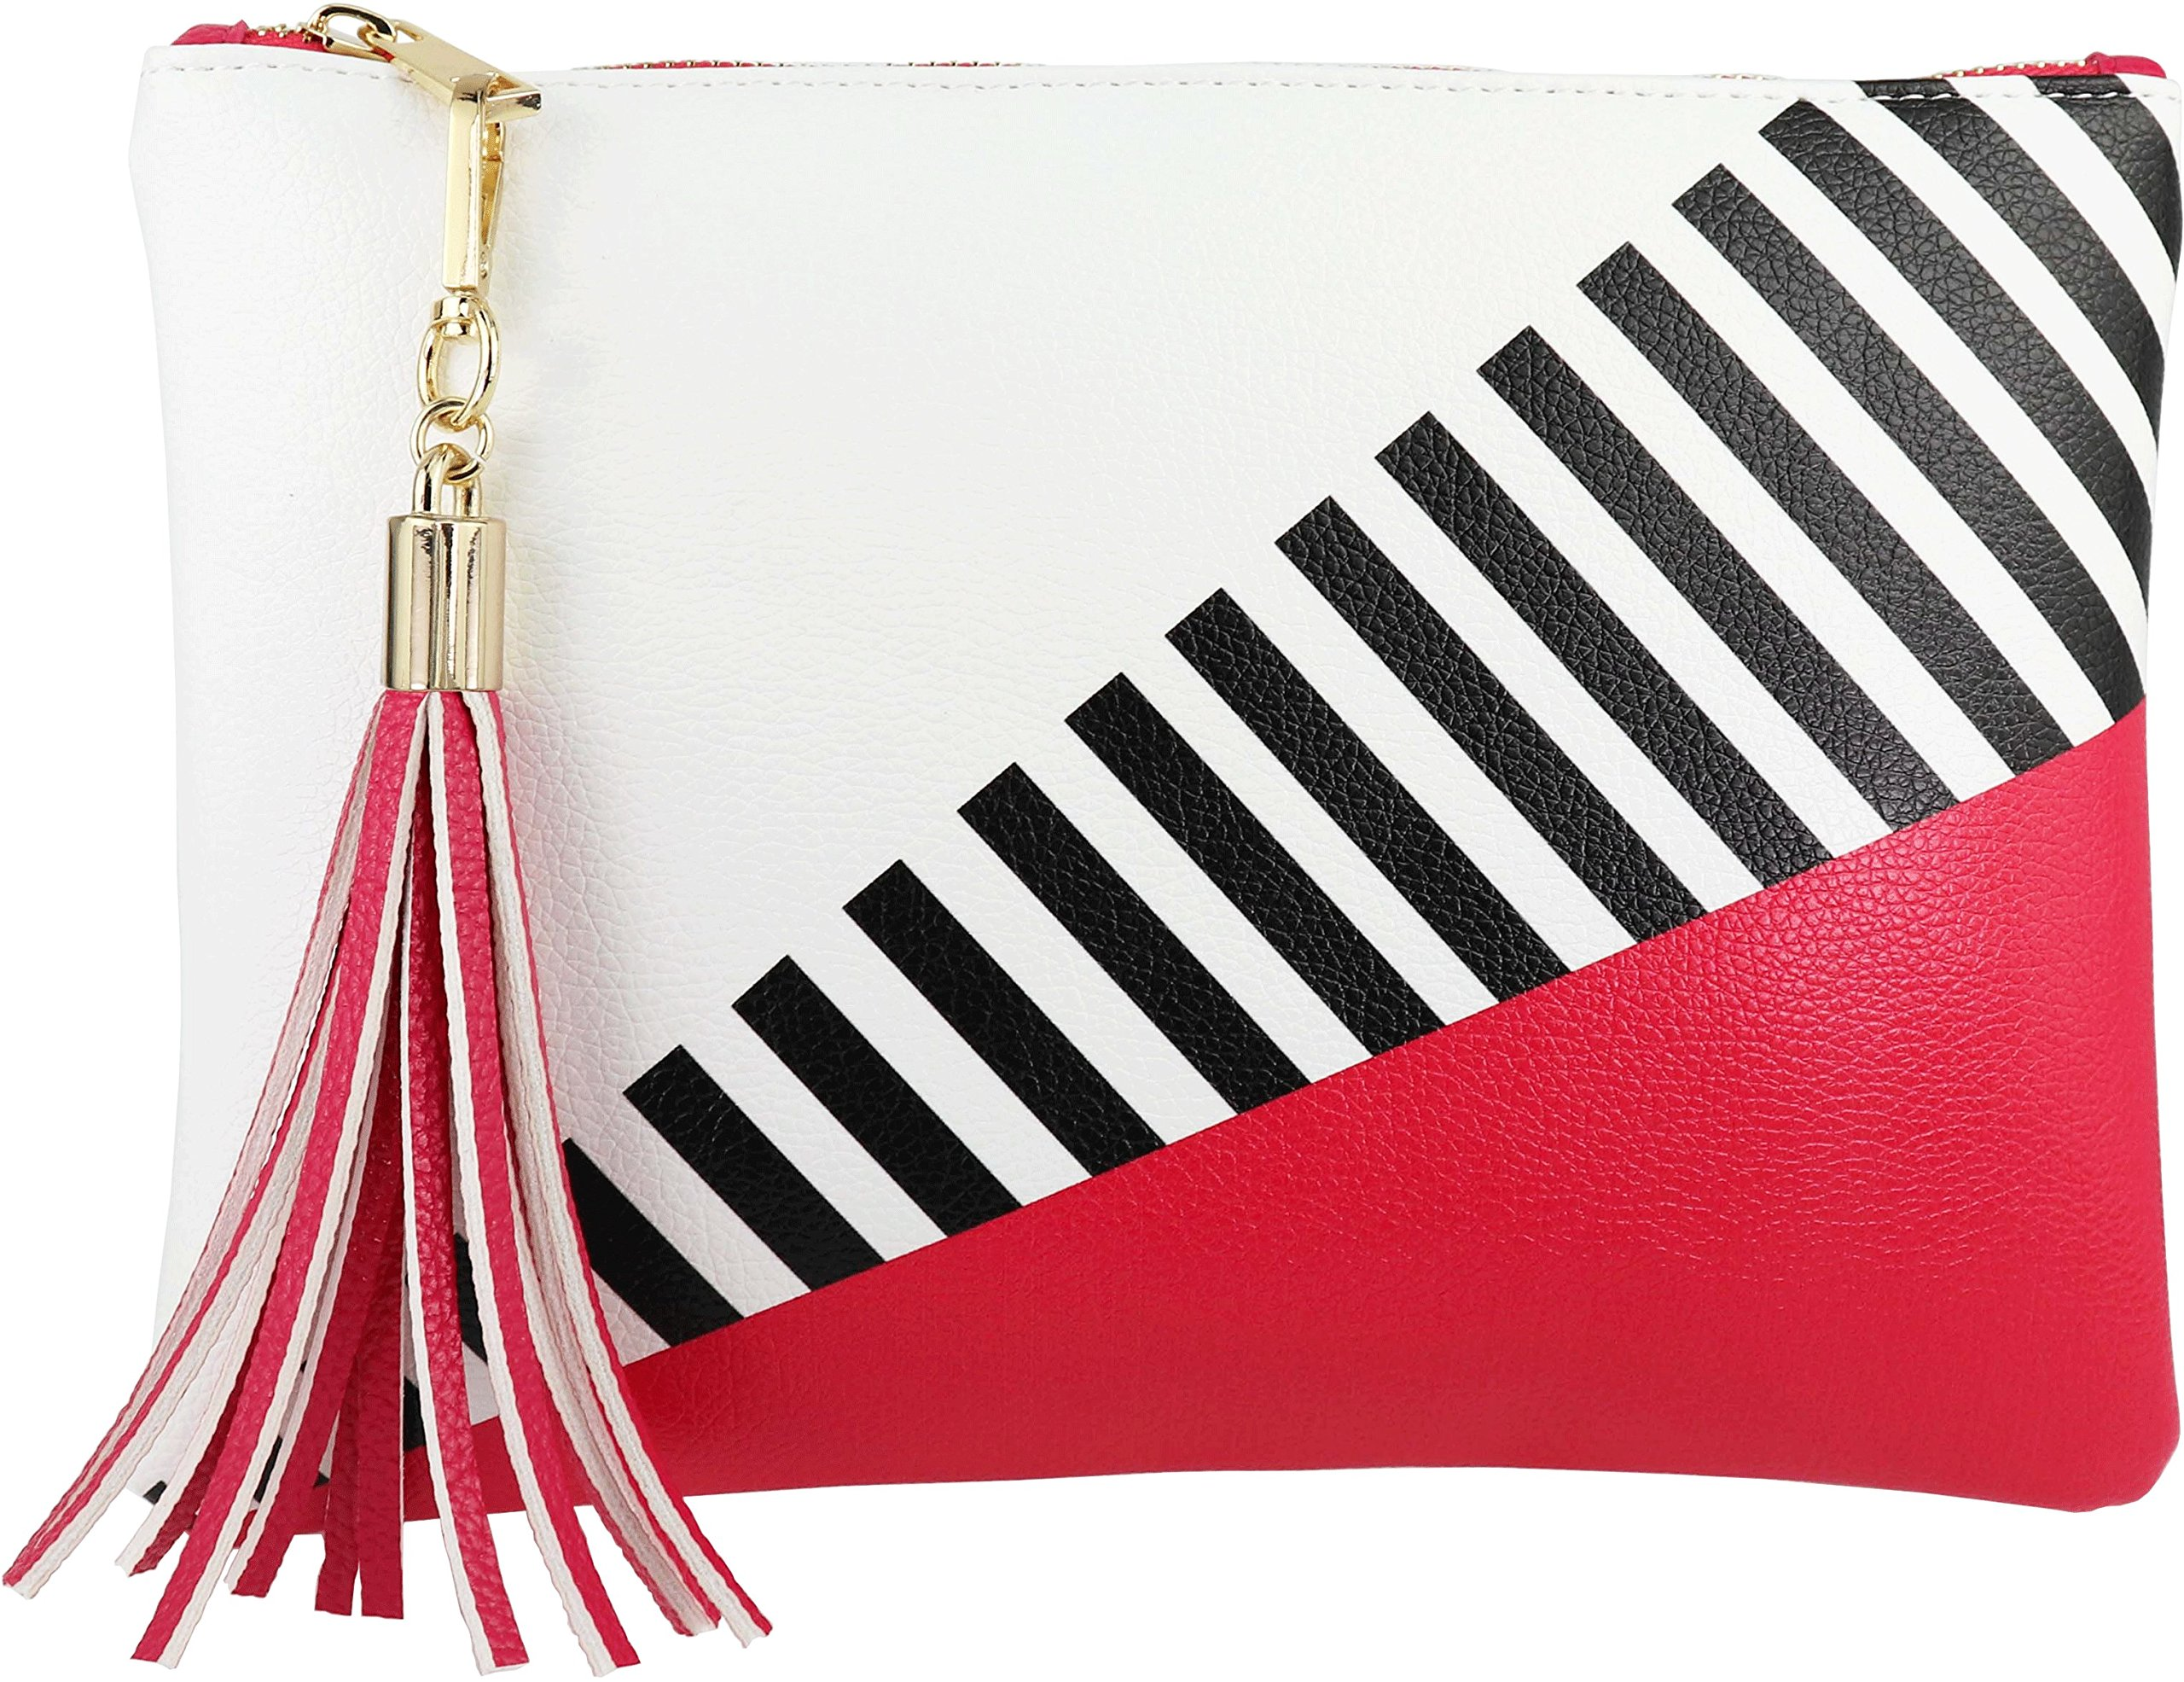 B BRENTANO Vegan Clutch Bag Pouch with Tassel Accent (Hot Pink)